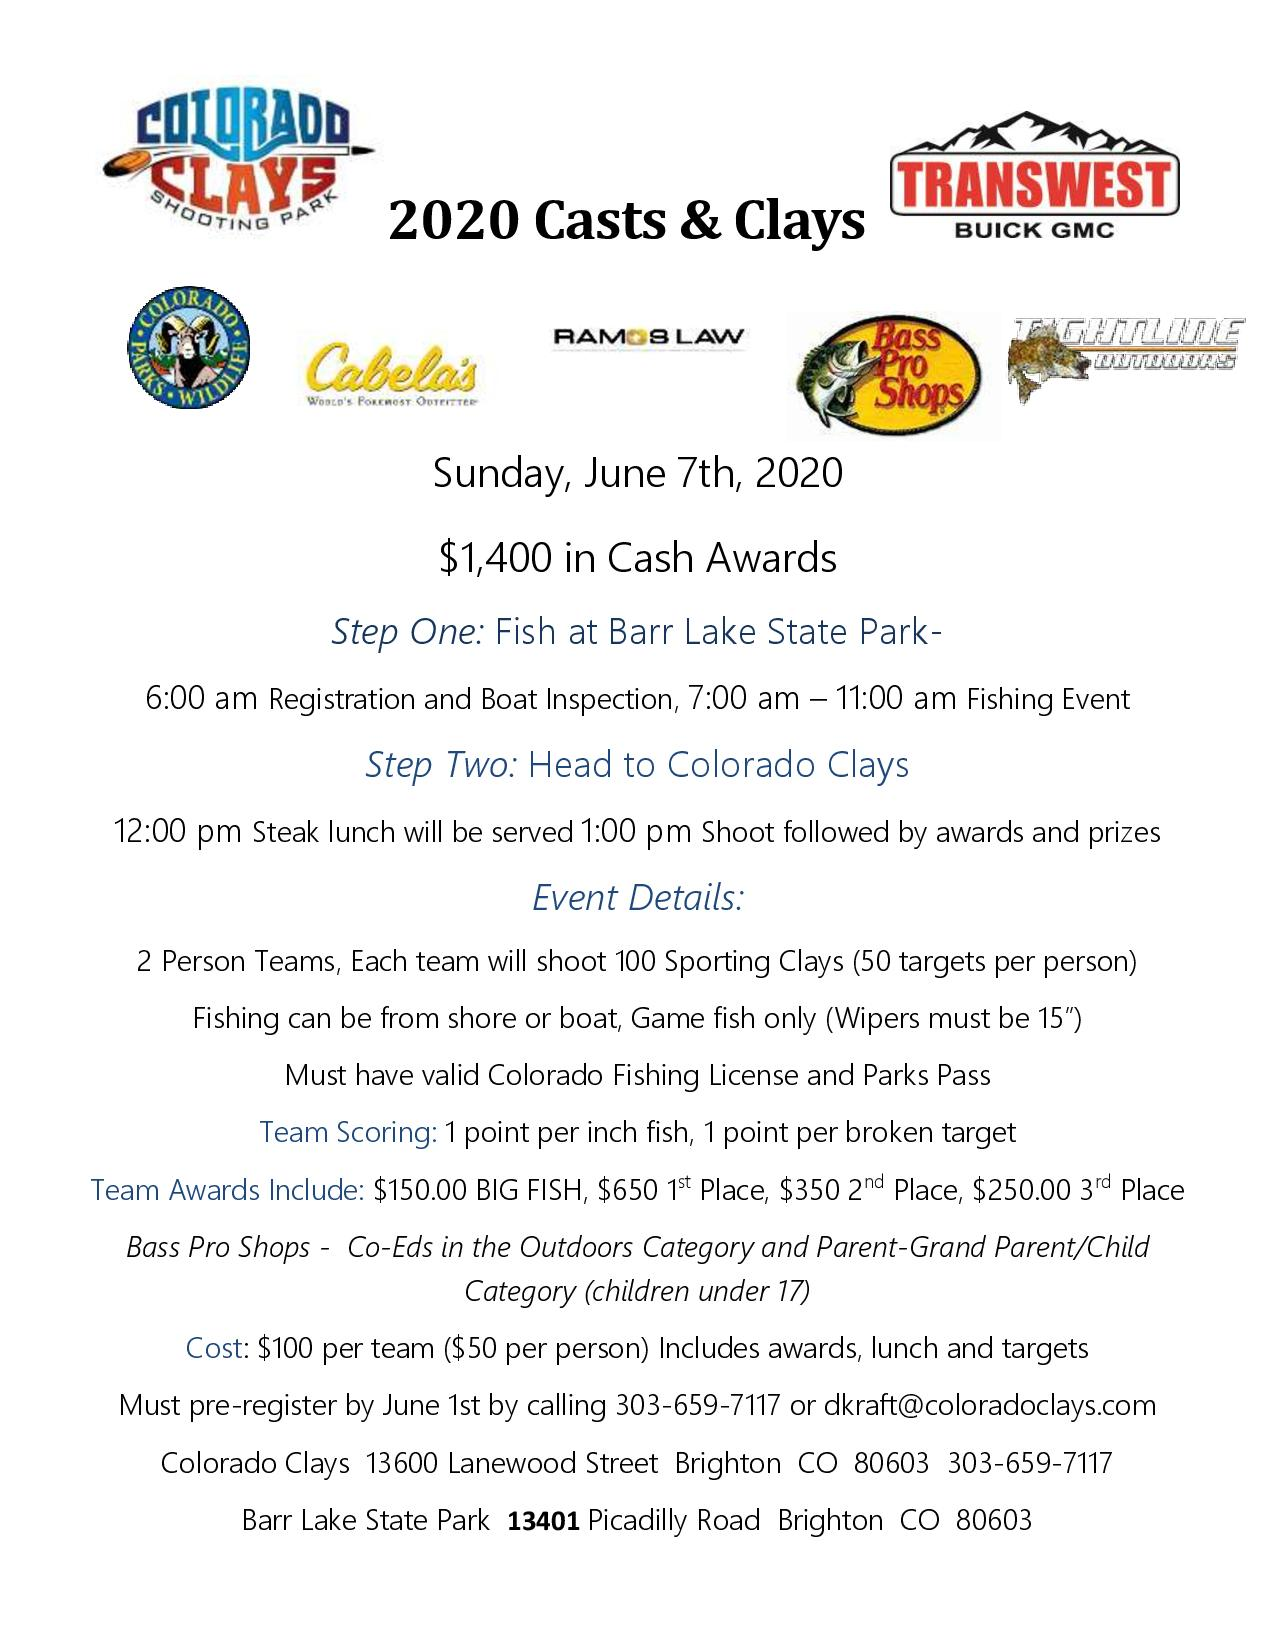 2020 Casts & Clays Sponsored by Transwest Buick GMC